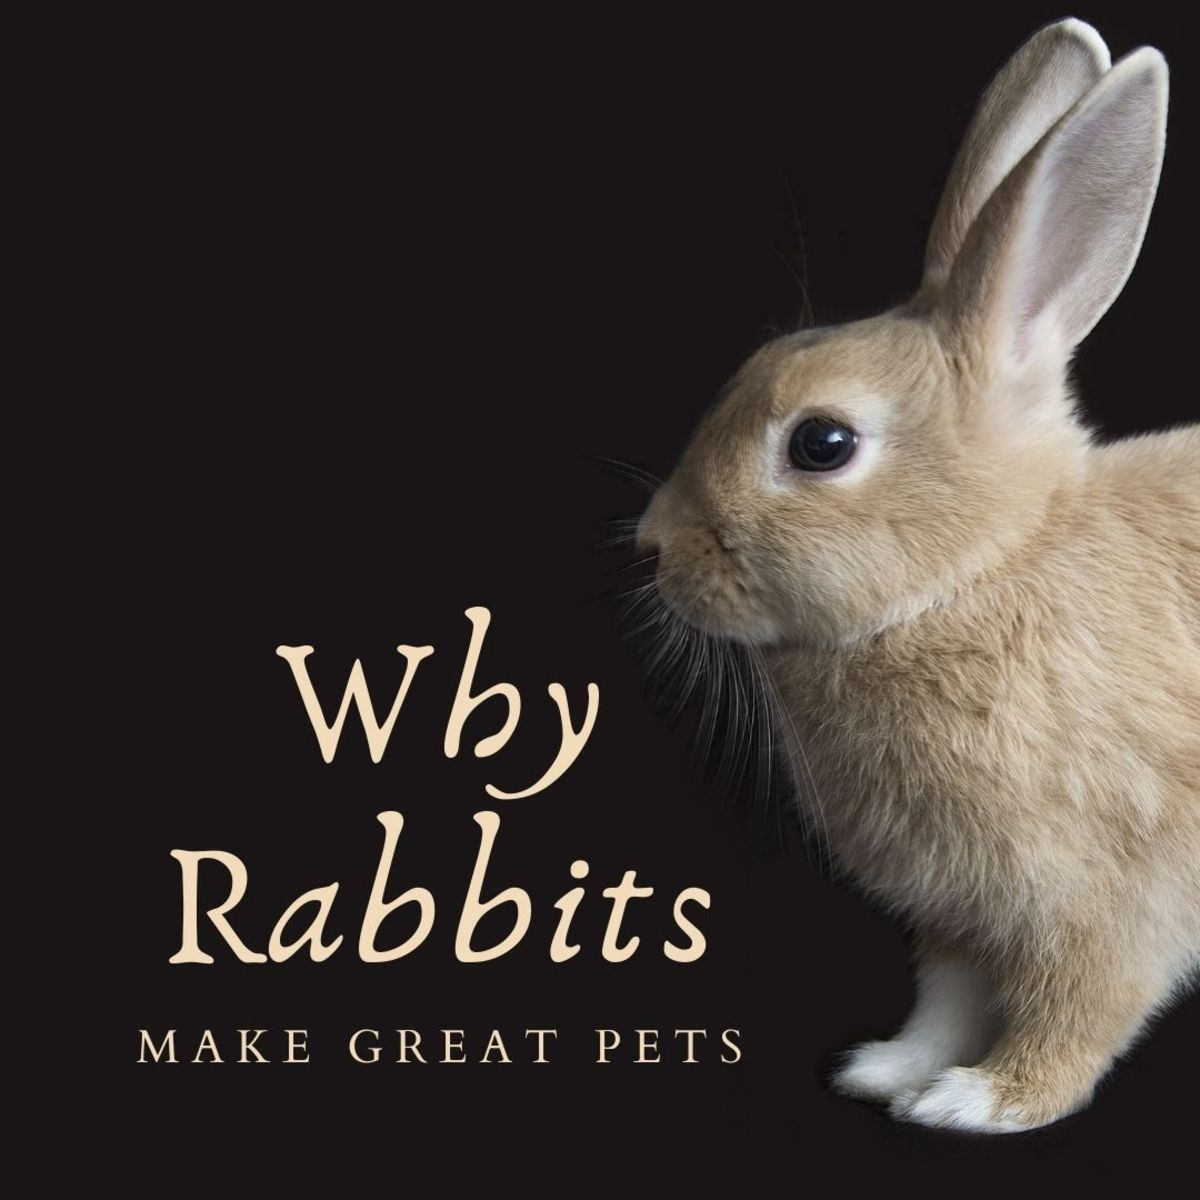 Why rabbits make great pets year-round, not just for Easter